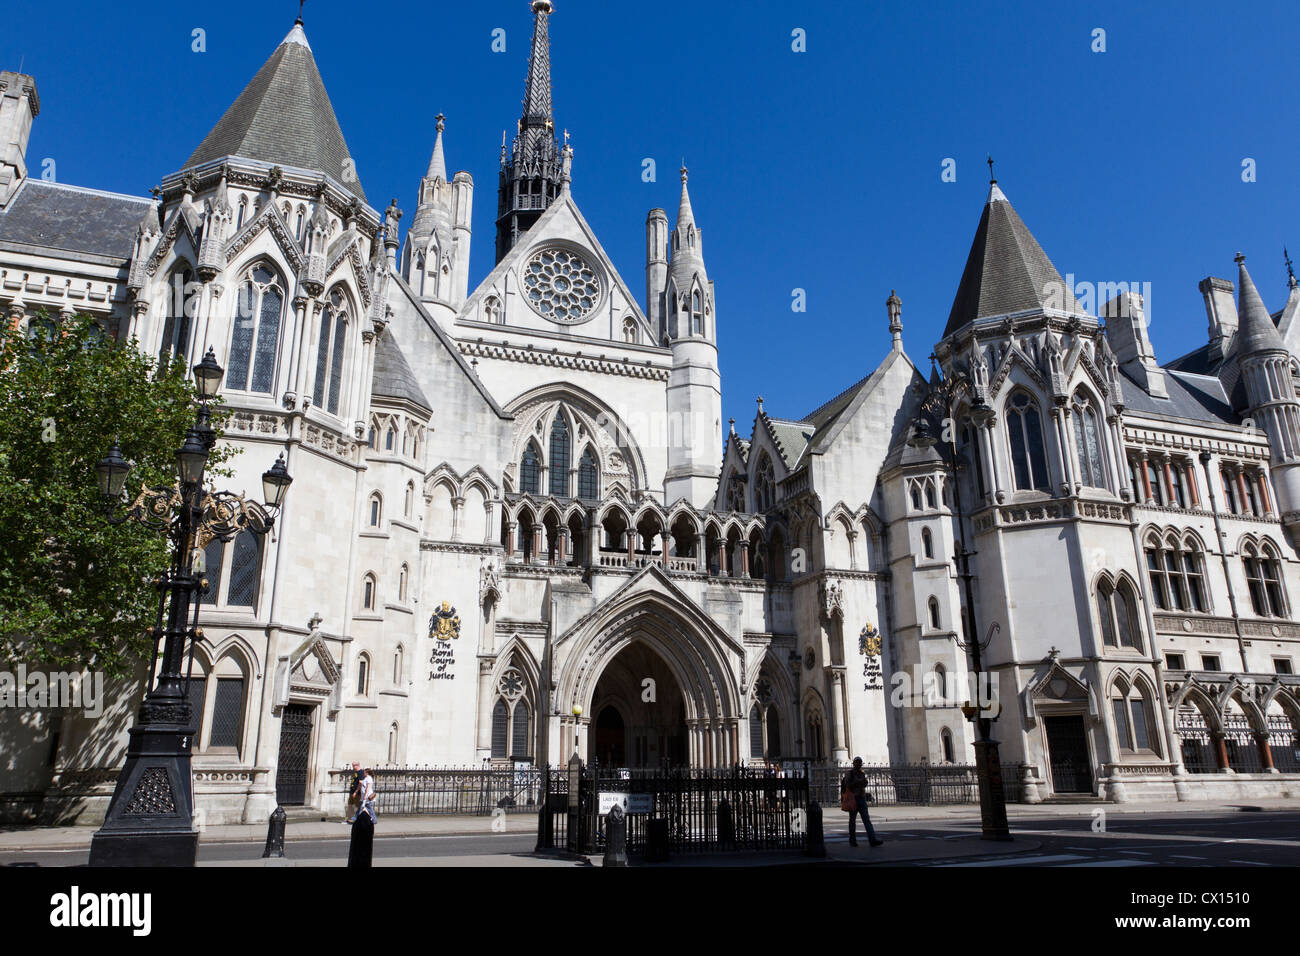 The Royal Courts of Justice, home of the Supreme Court.  The Strand, London, England. UK Stock Photo